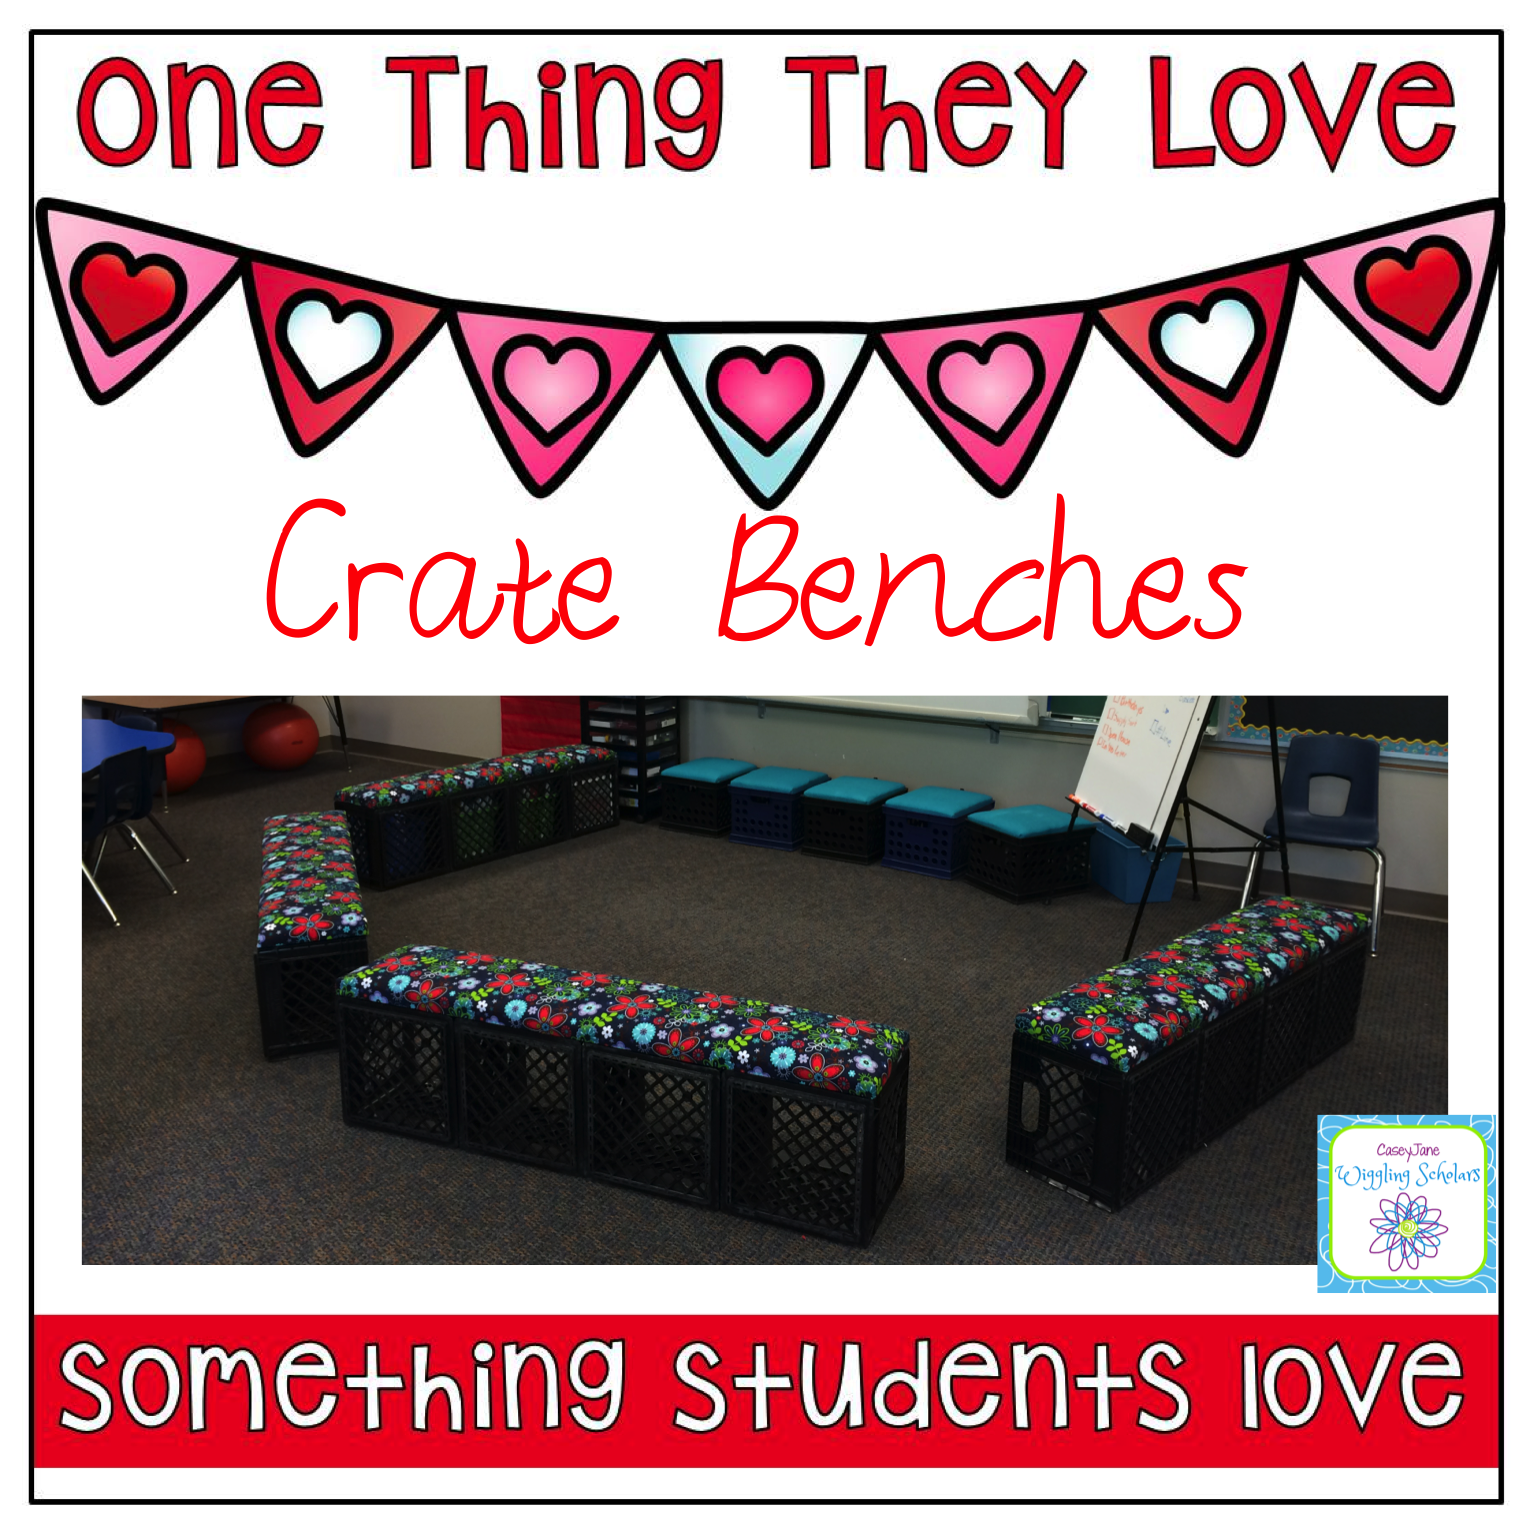 Crate Benches